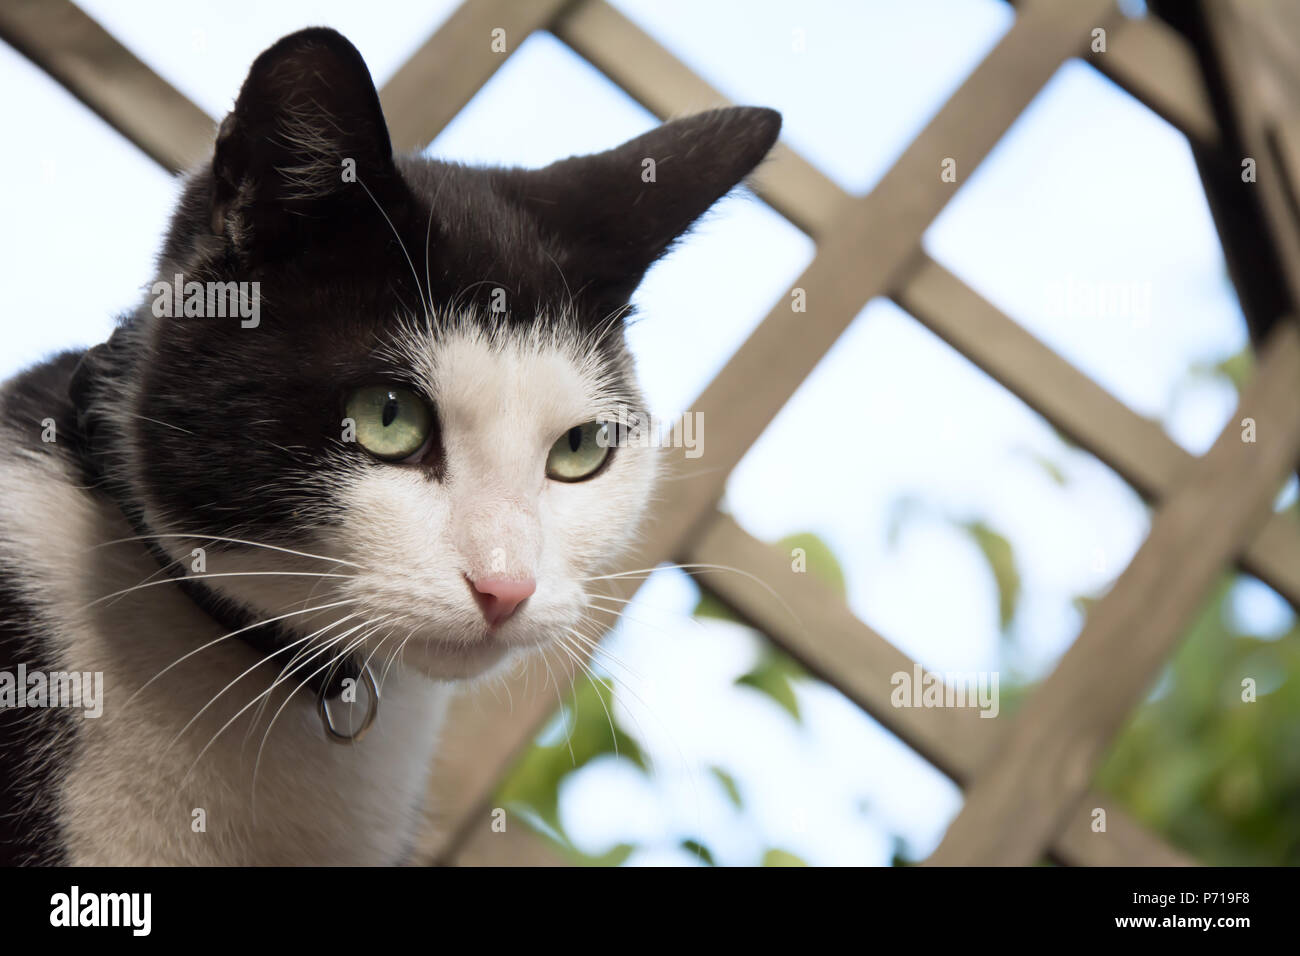 Closeup of a young, black and white cat's face - watching something - Stock Image